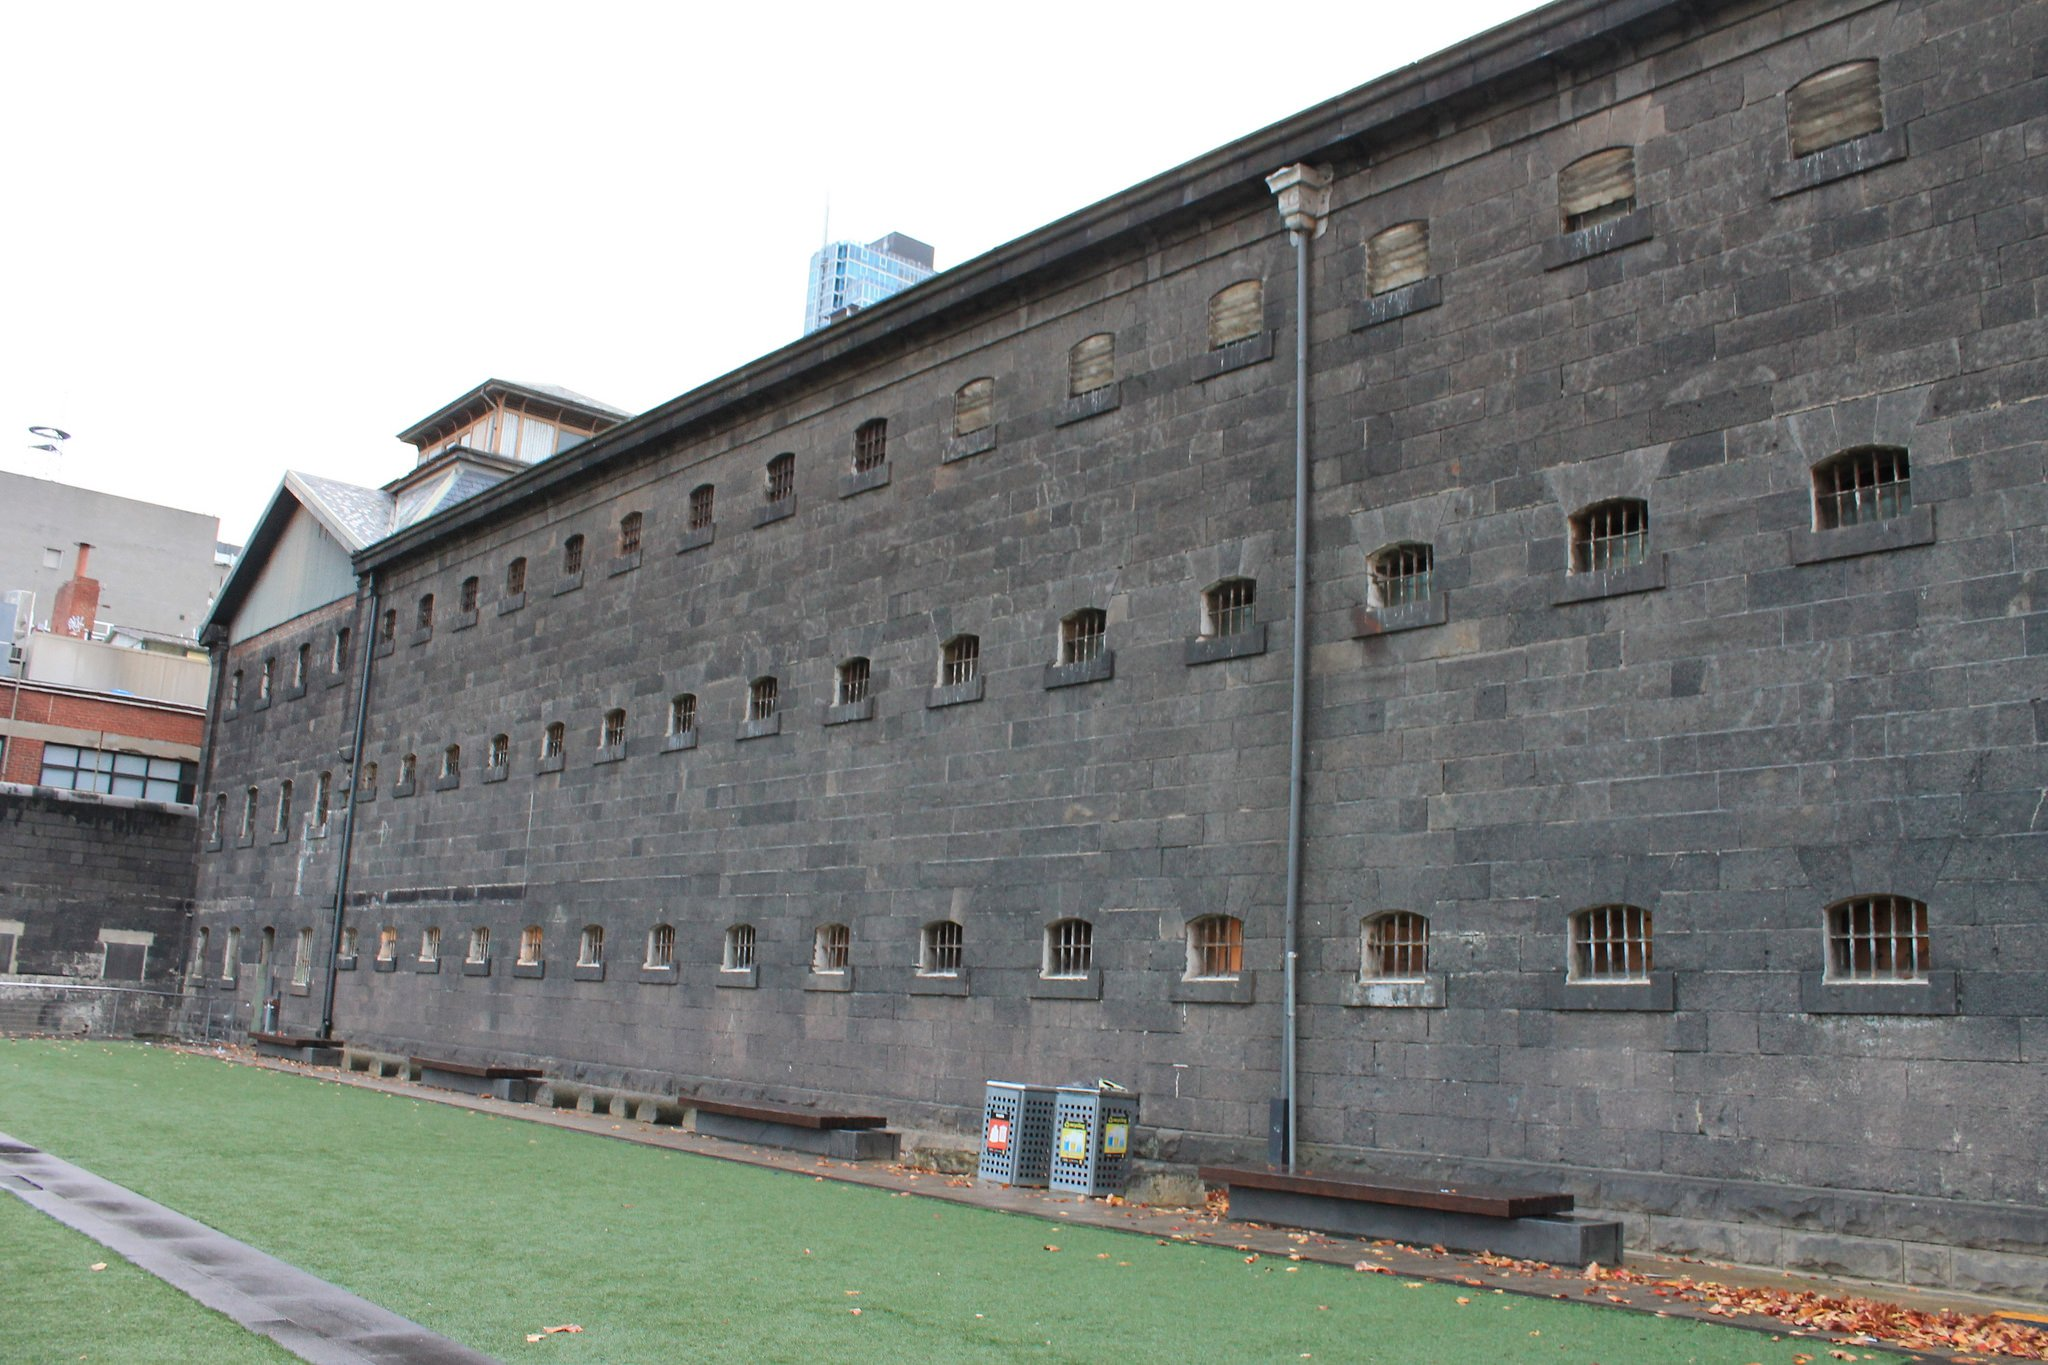 Old Melbourne Gaol by Mertie . (CC)